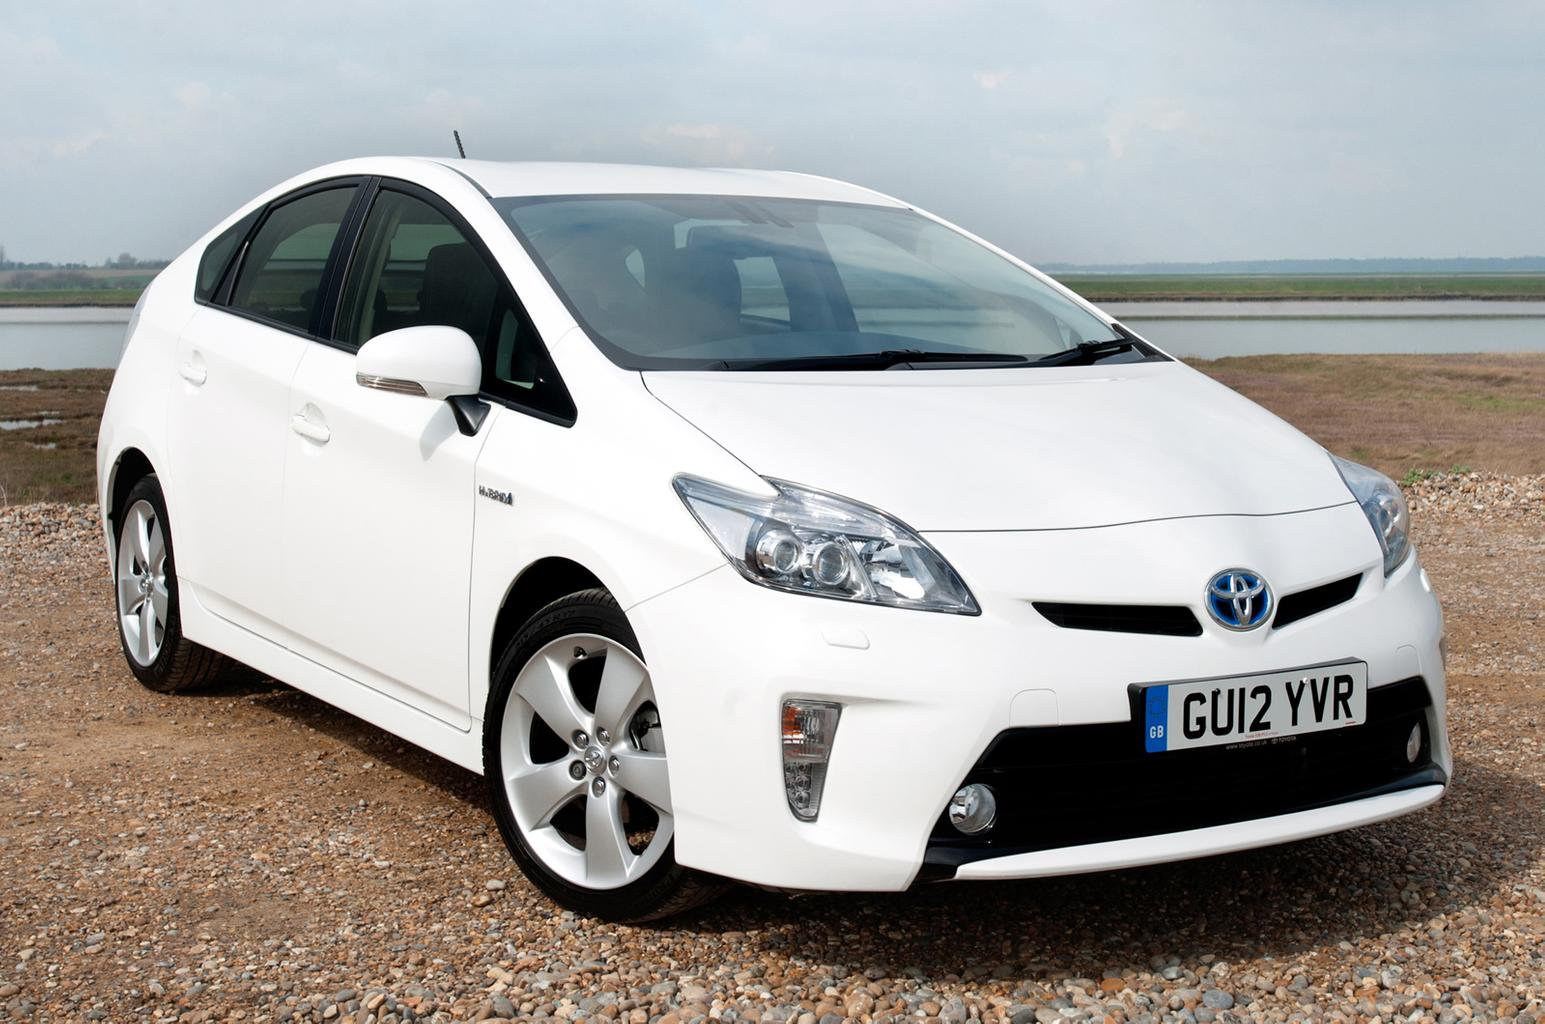 Deal of the Day: Toyota Prius Plug-in